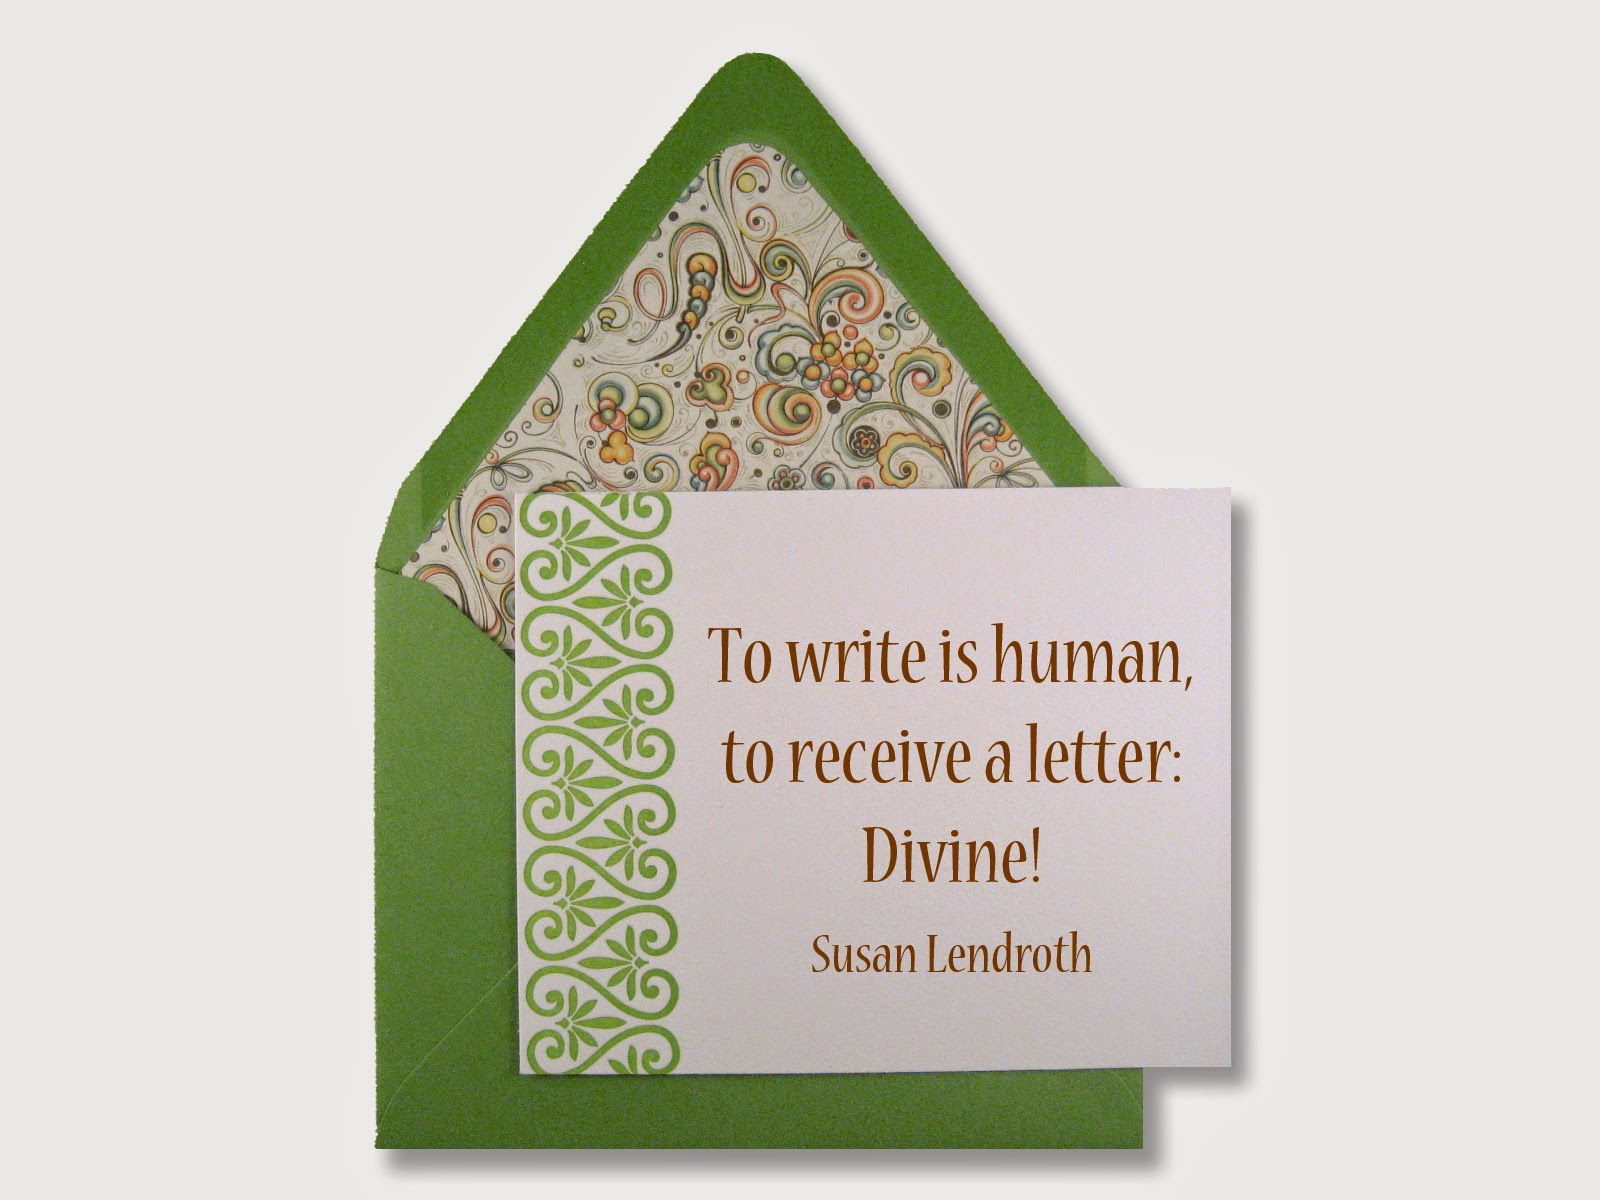 To write is human, to receive a letter: Divine! Susan Lendroth